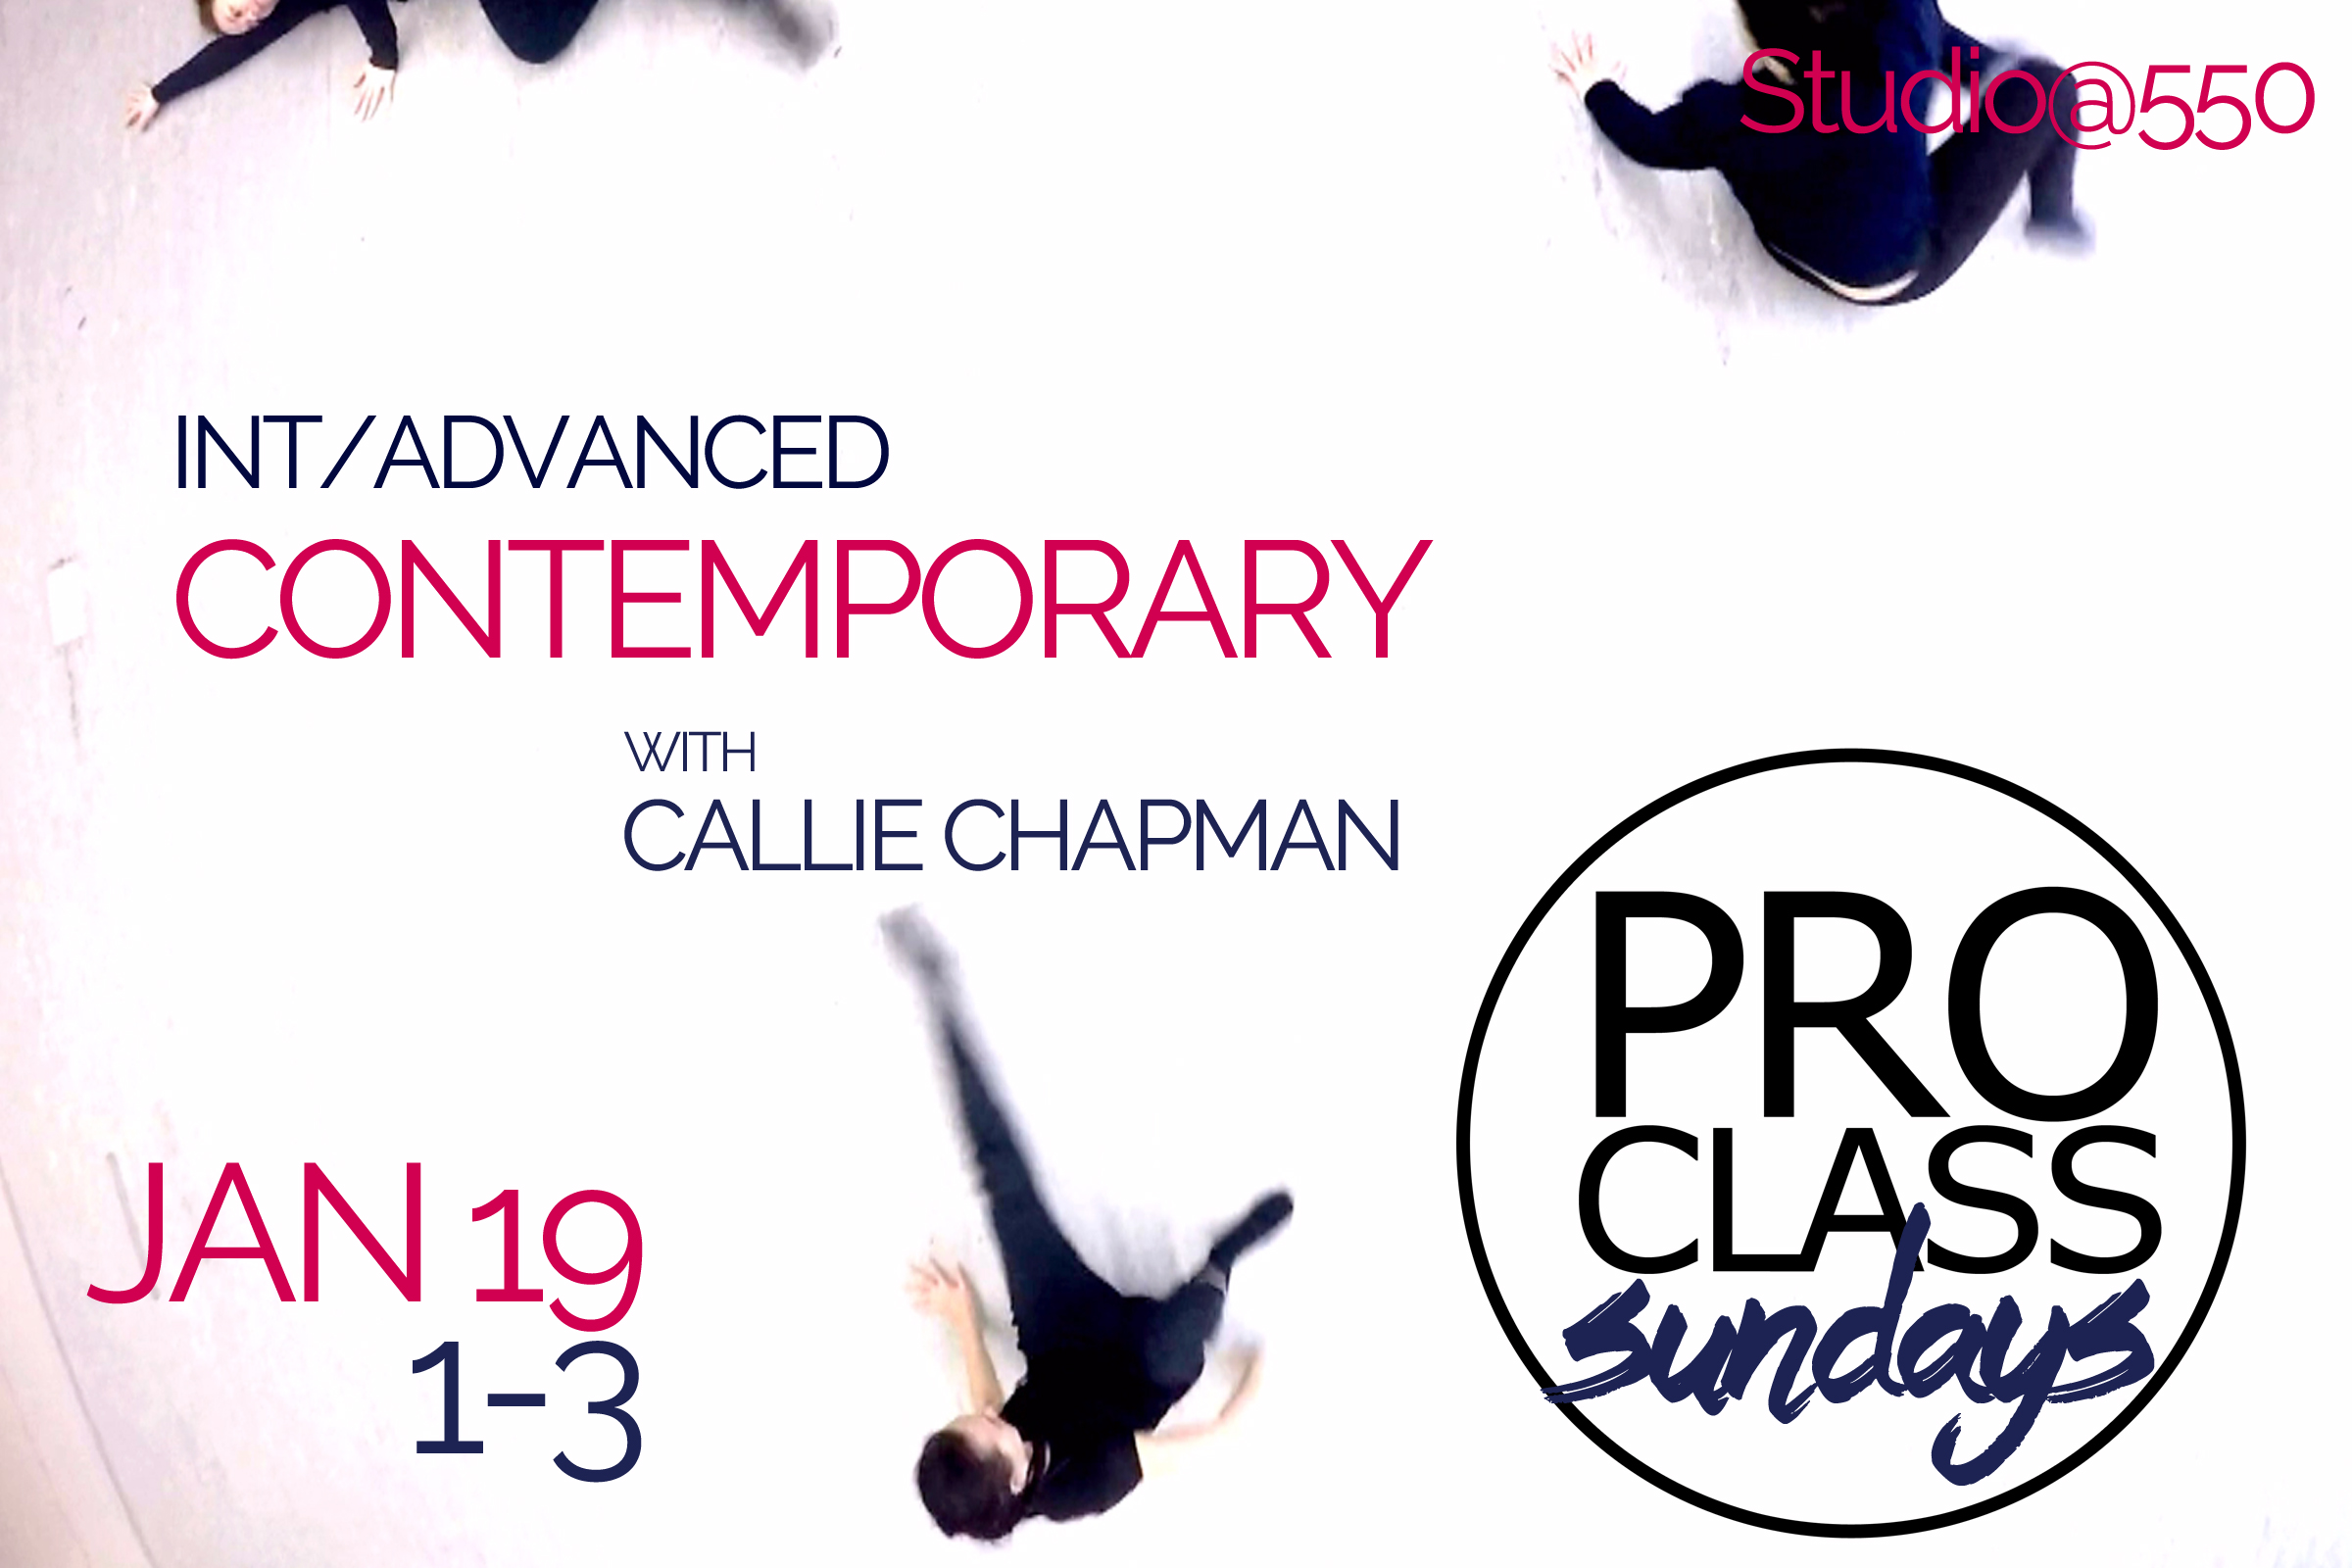 ProLevel Class Series - Contemporary with Callie Chapman